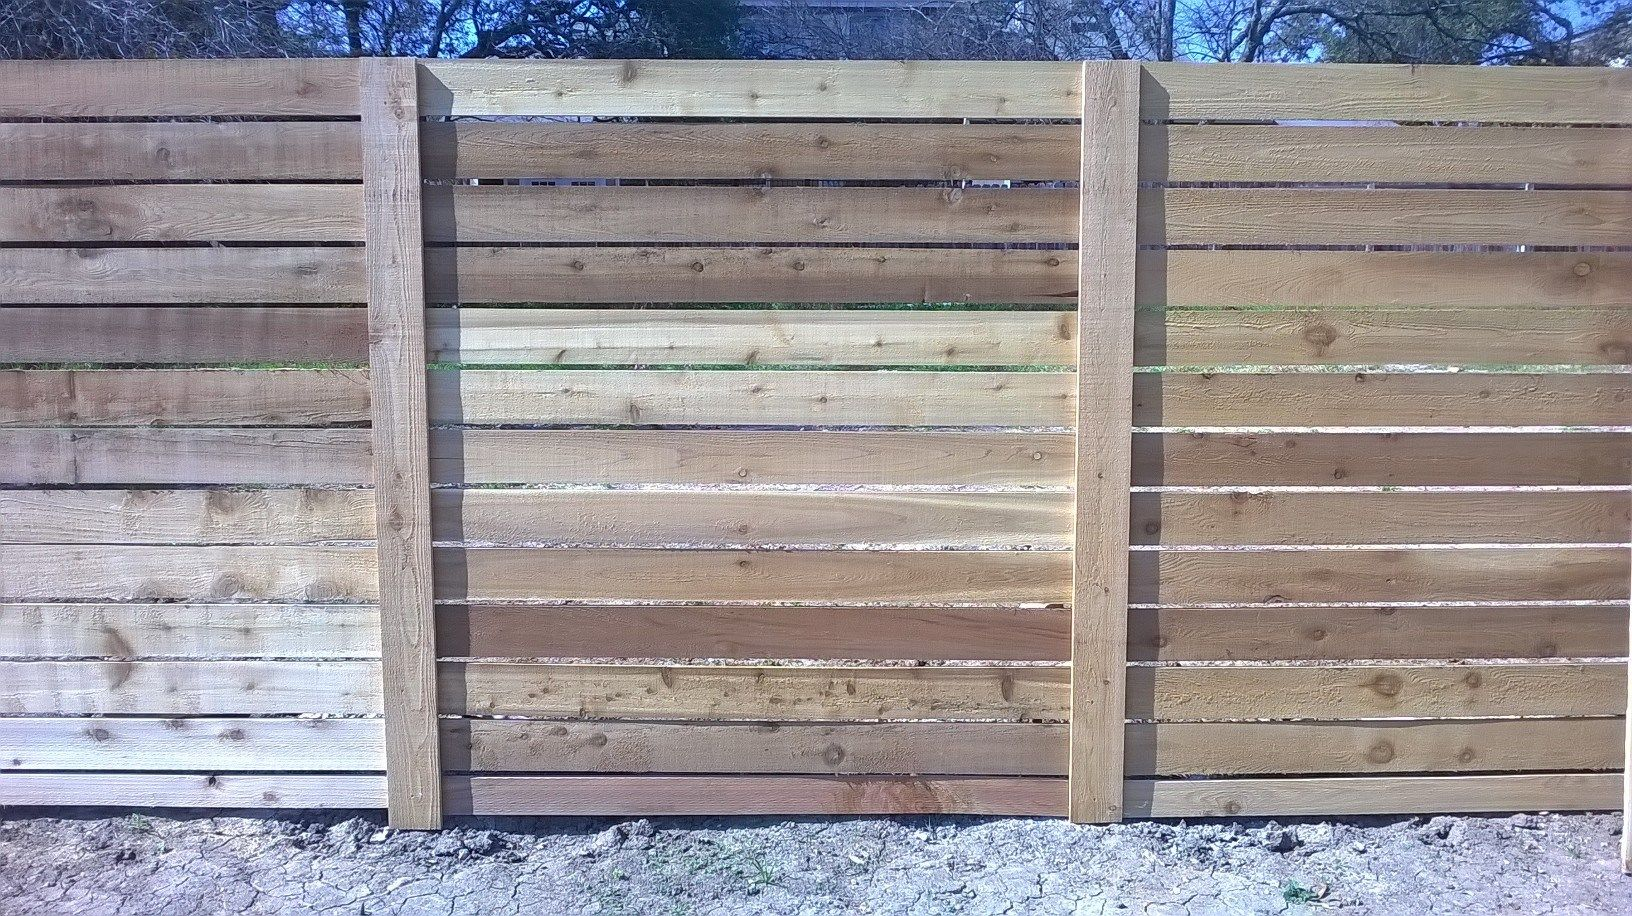 6 Tall Horizontal 1x6 Cedar W Galvanized Steel Posts Trimmed Out One Side Small Spacing On 1x6 Wood Fence Fence Good Neighbor Fence